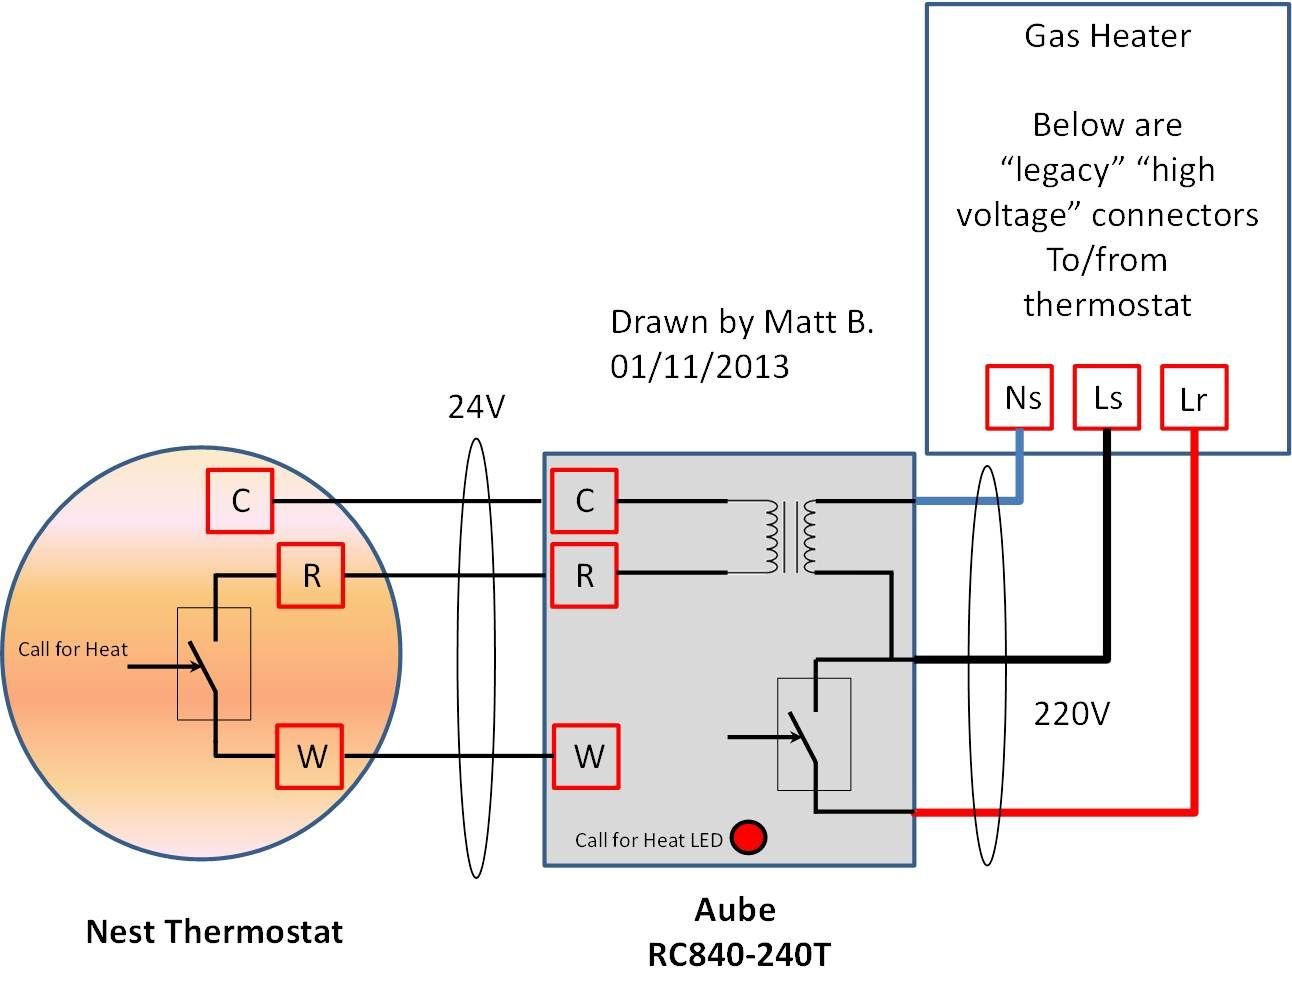 Electrical Schematic Of Nest Thermostat With 220 240 Volts Heating System Thermostat Wiring Heating Systems Nest Thermostat